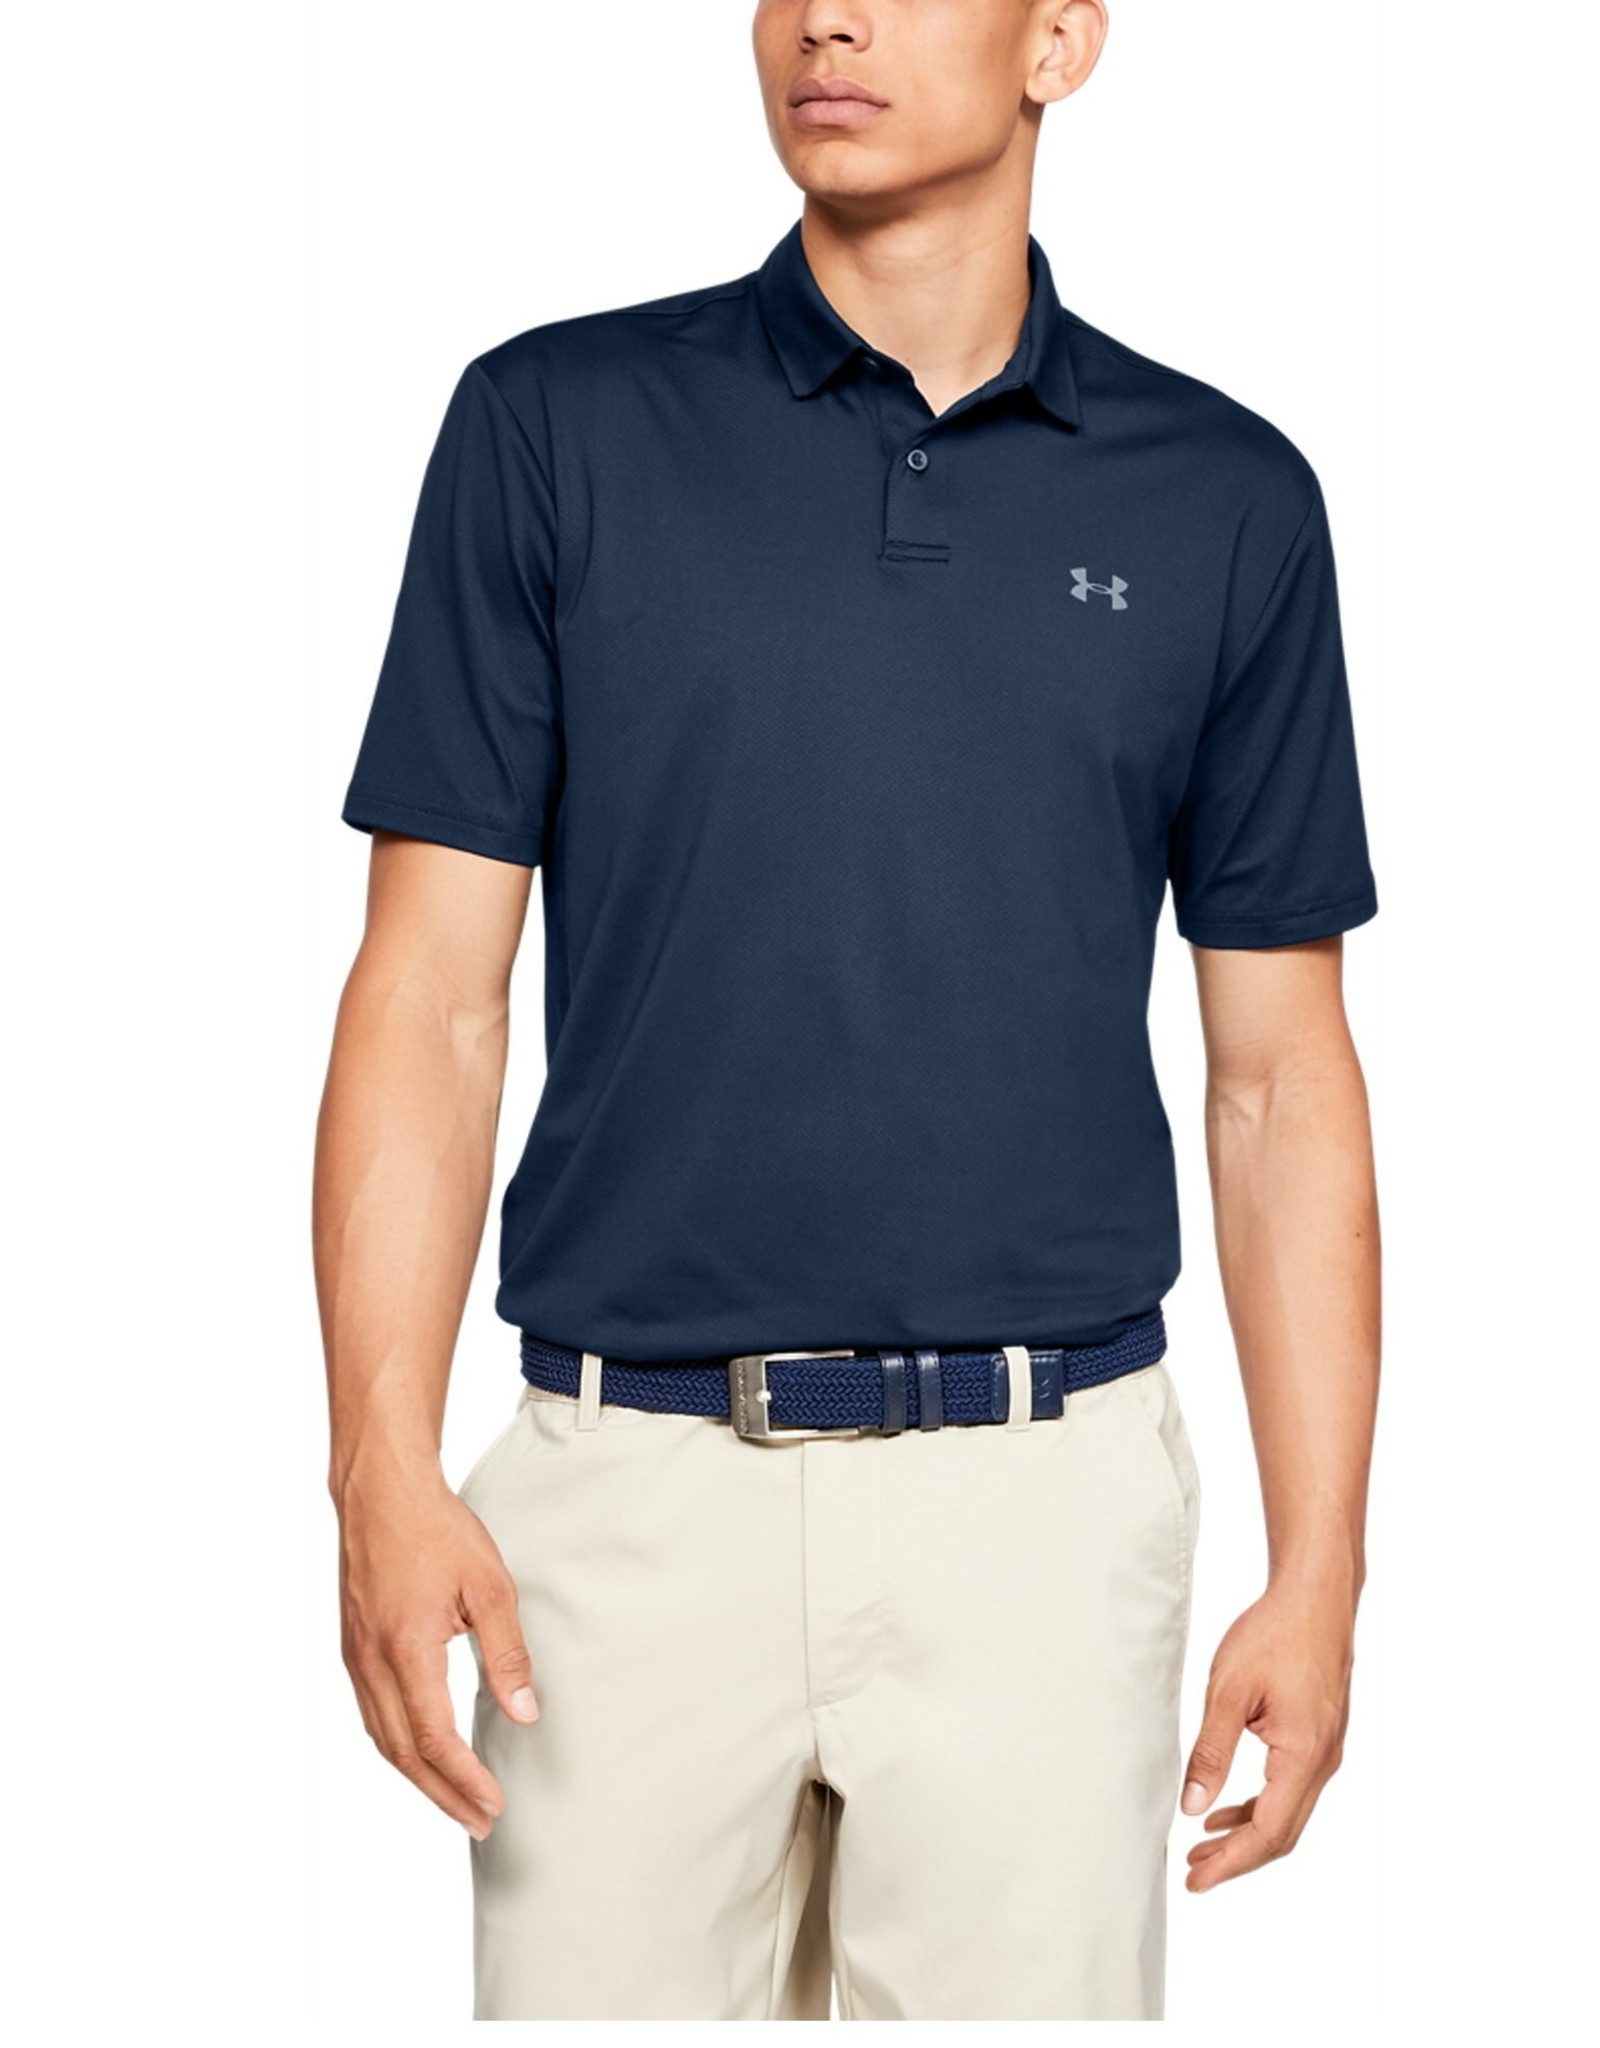 Mens Performance Polo 2.0-NVY